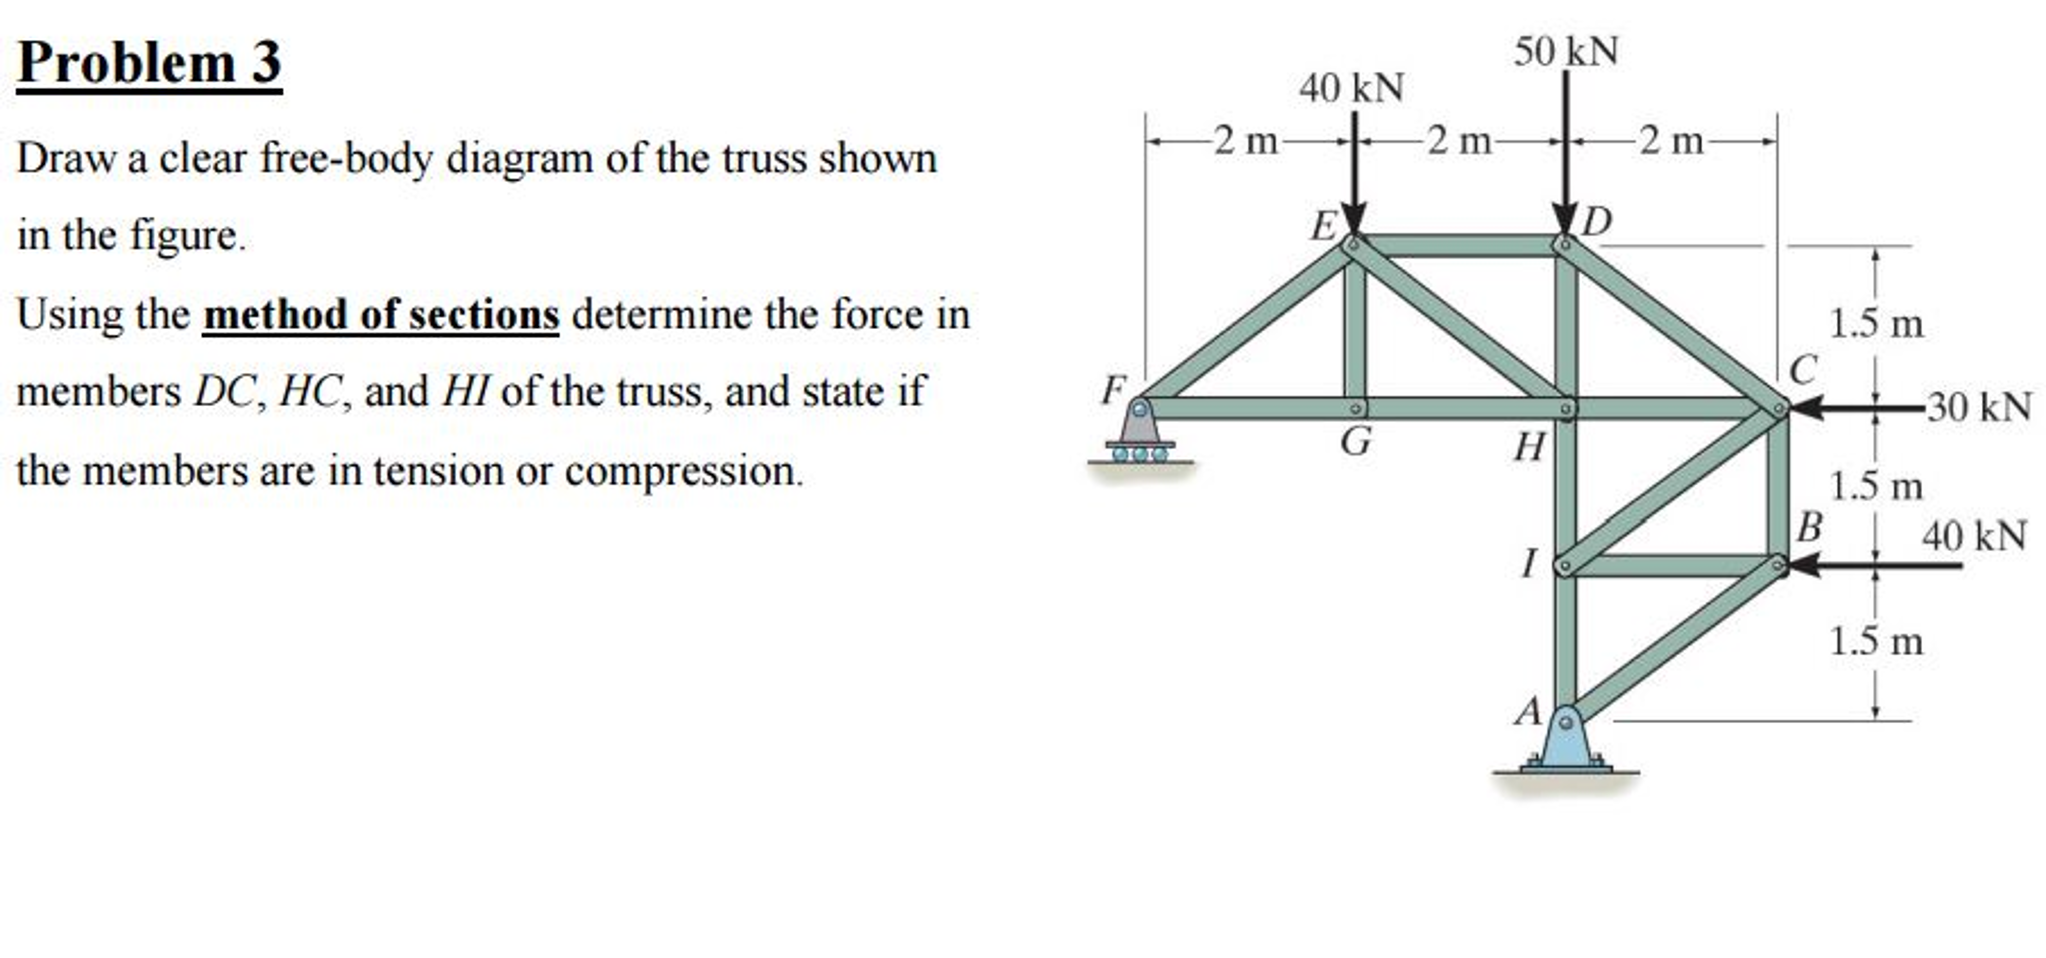 Draw A Clear Free-body Diagram Of The Truss Shown ... | Chegg.com